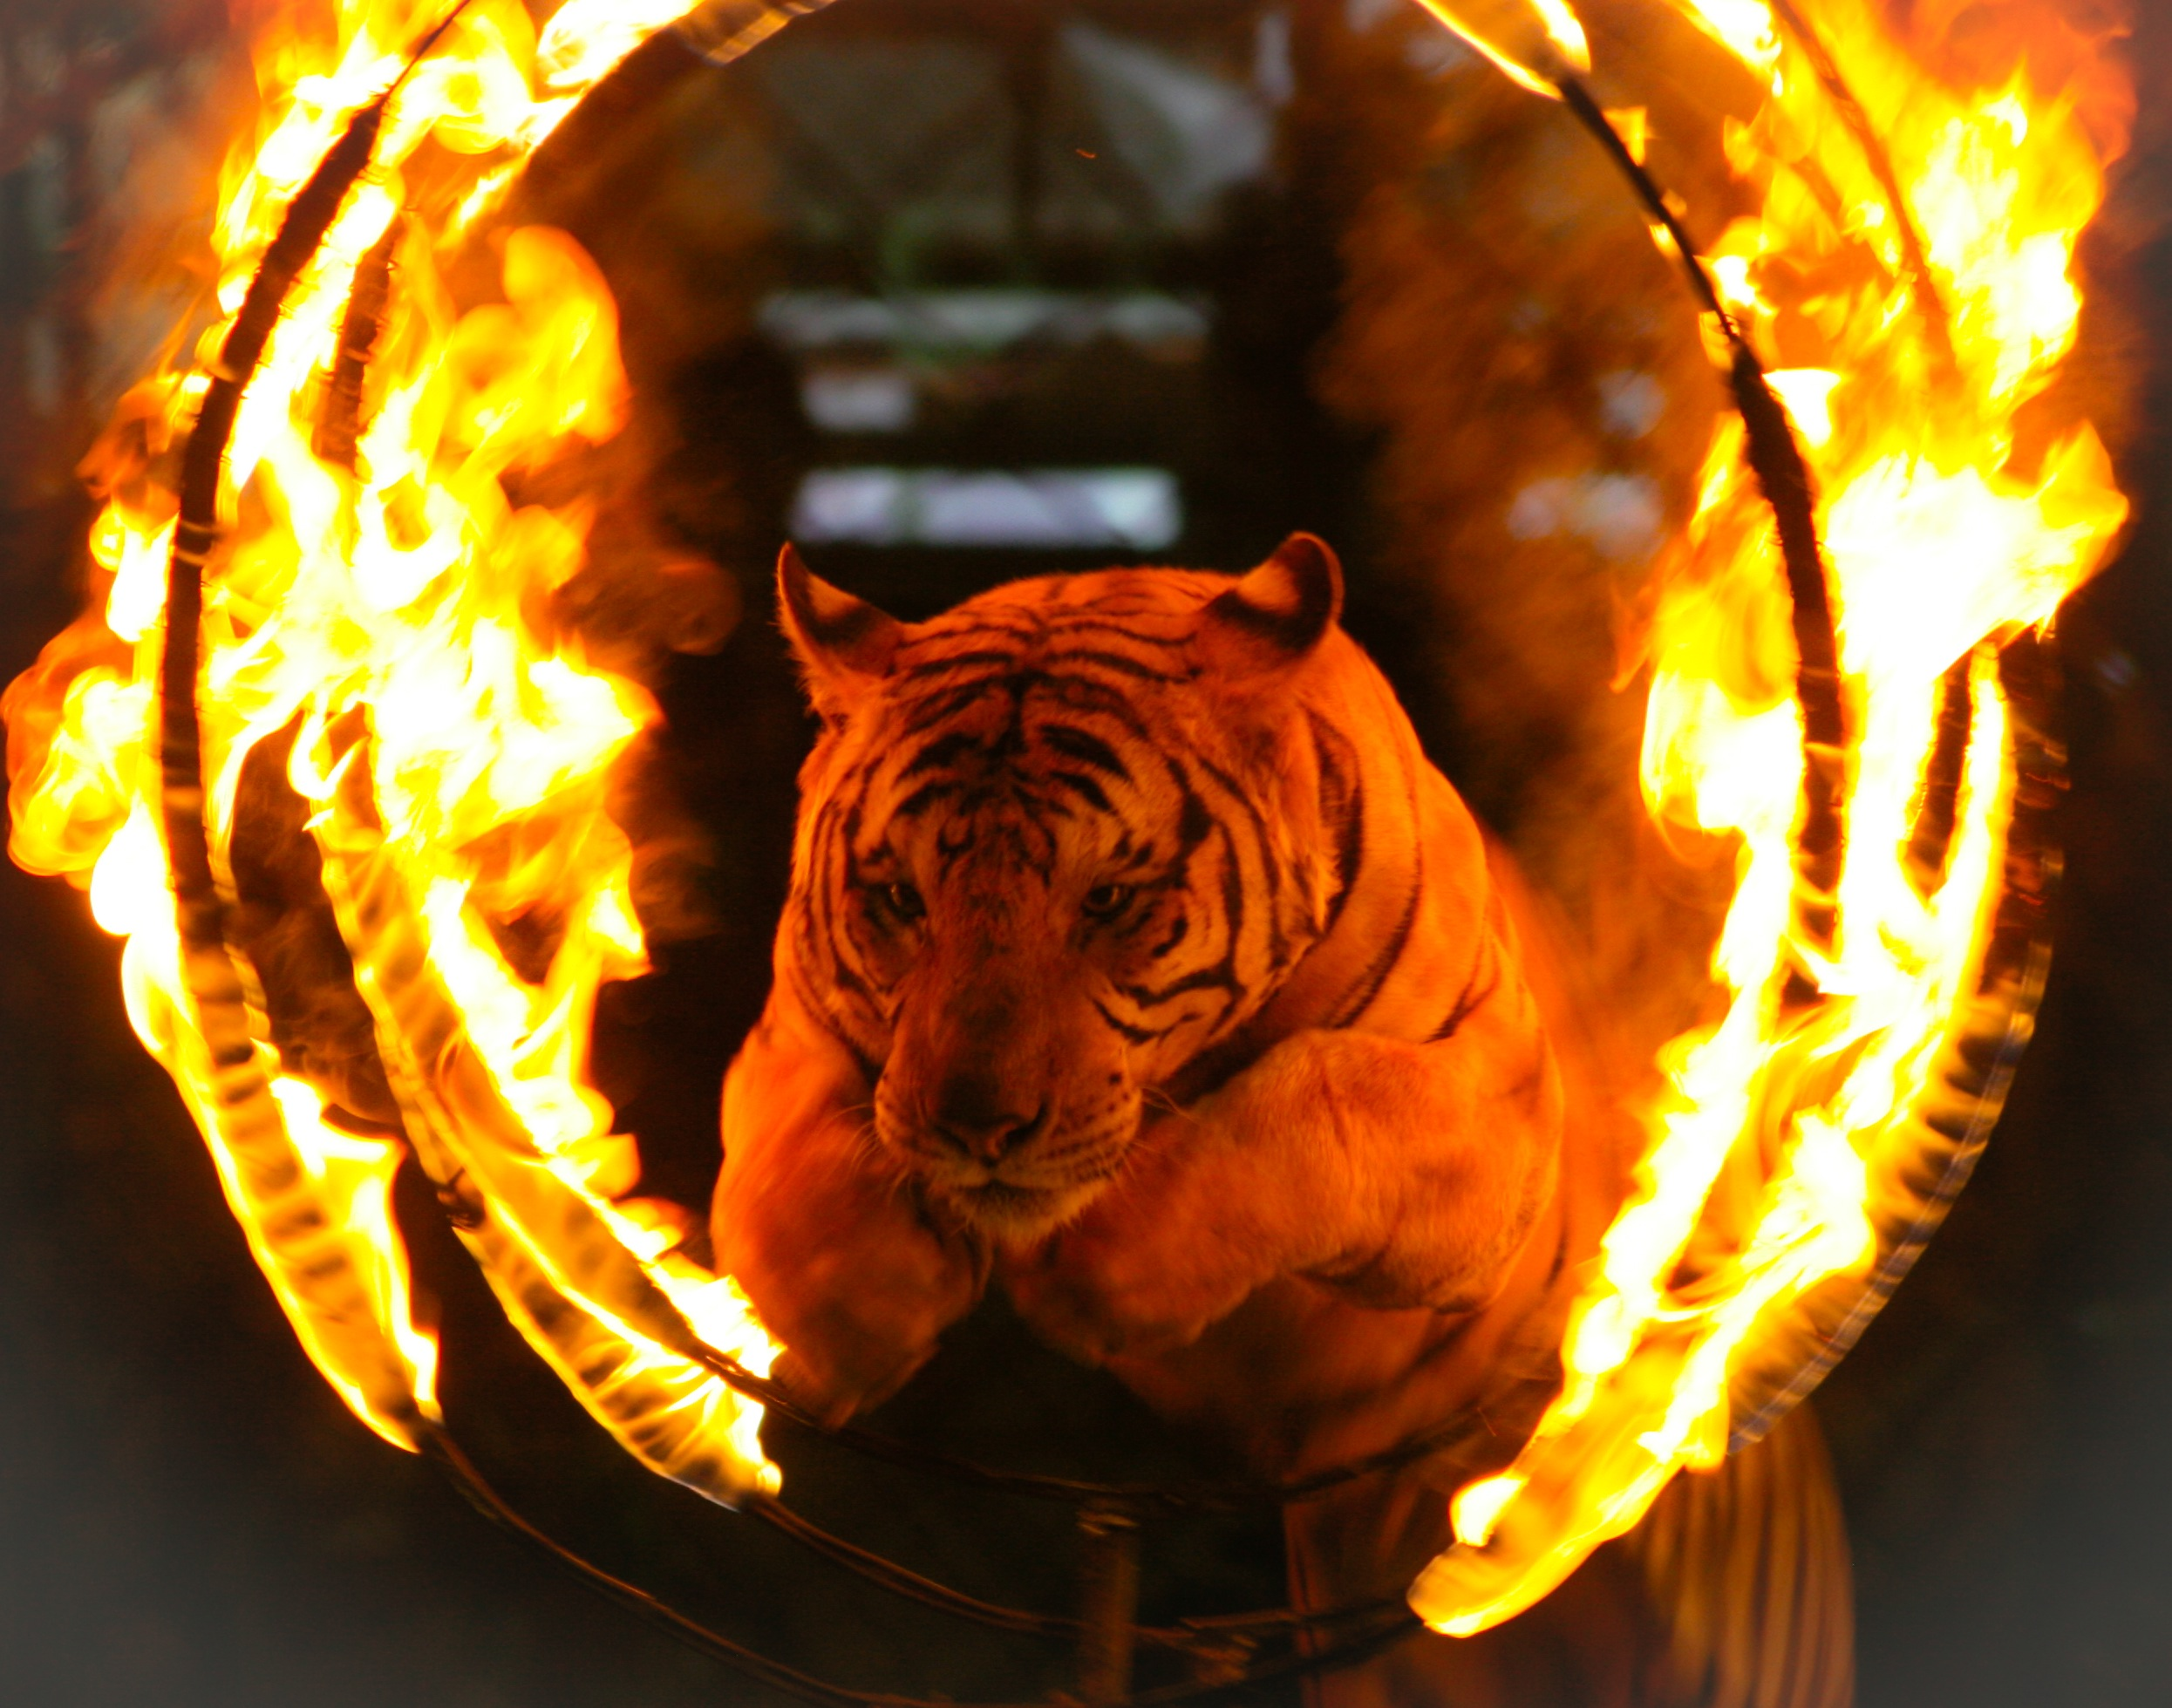 Circus Tigers Turn on Trainer, Maul Him to Death Despite Frantic